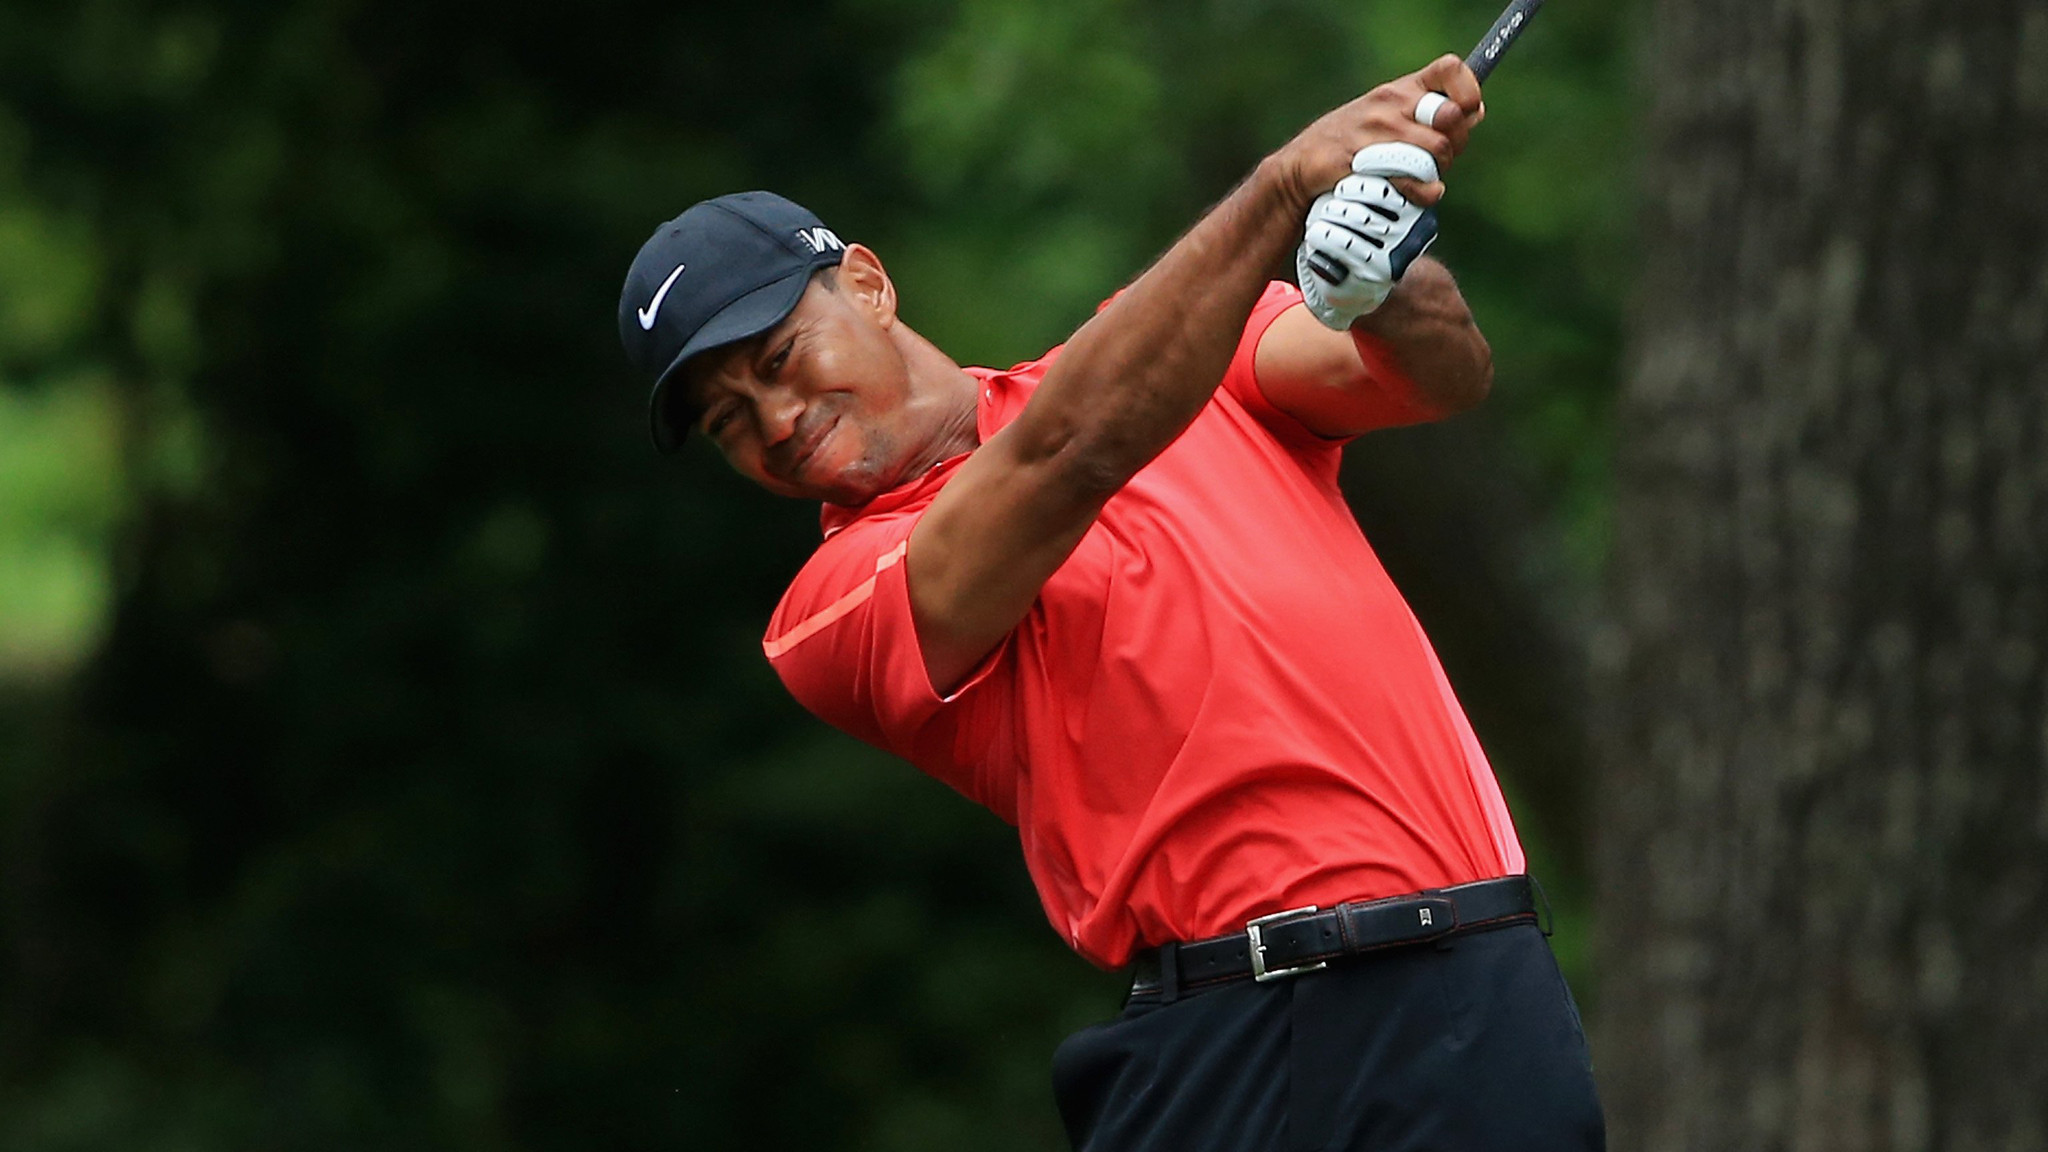 tiger woods struggles at masters  finishes tied for 17th